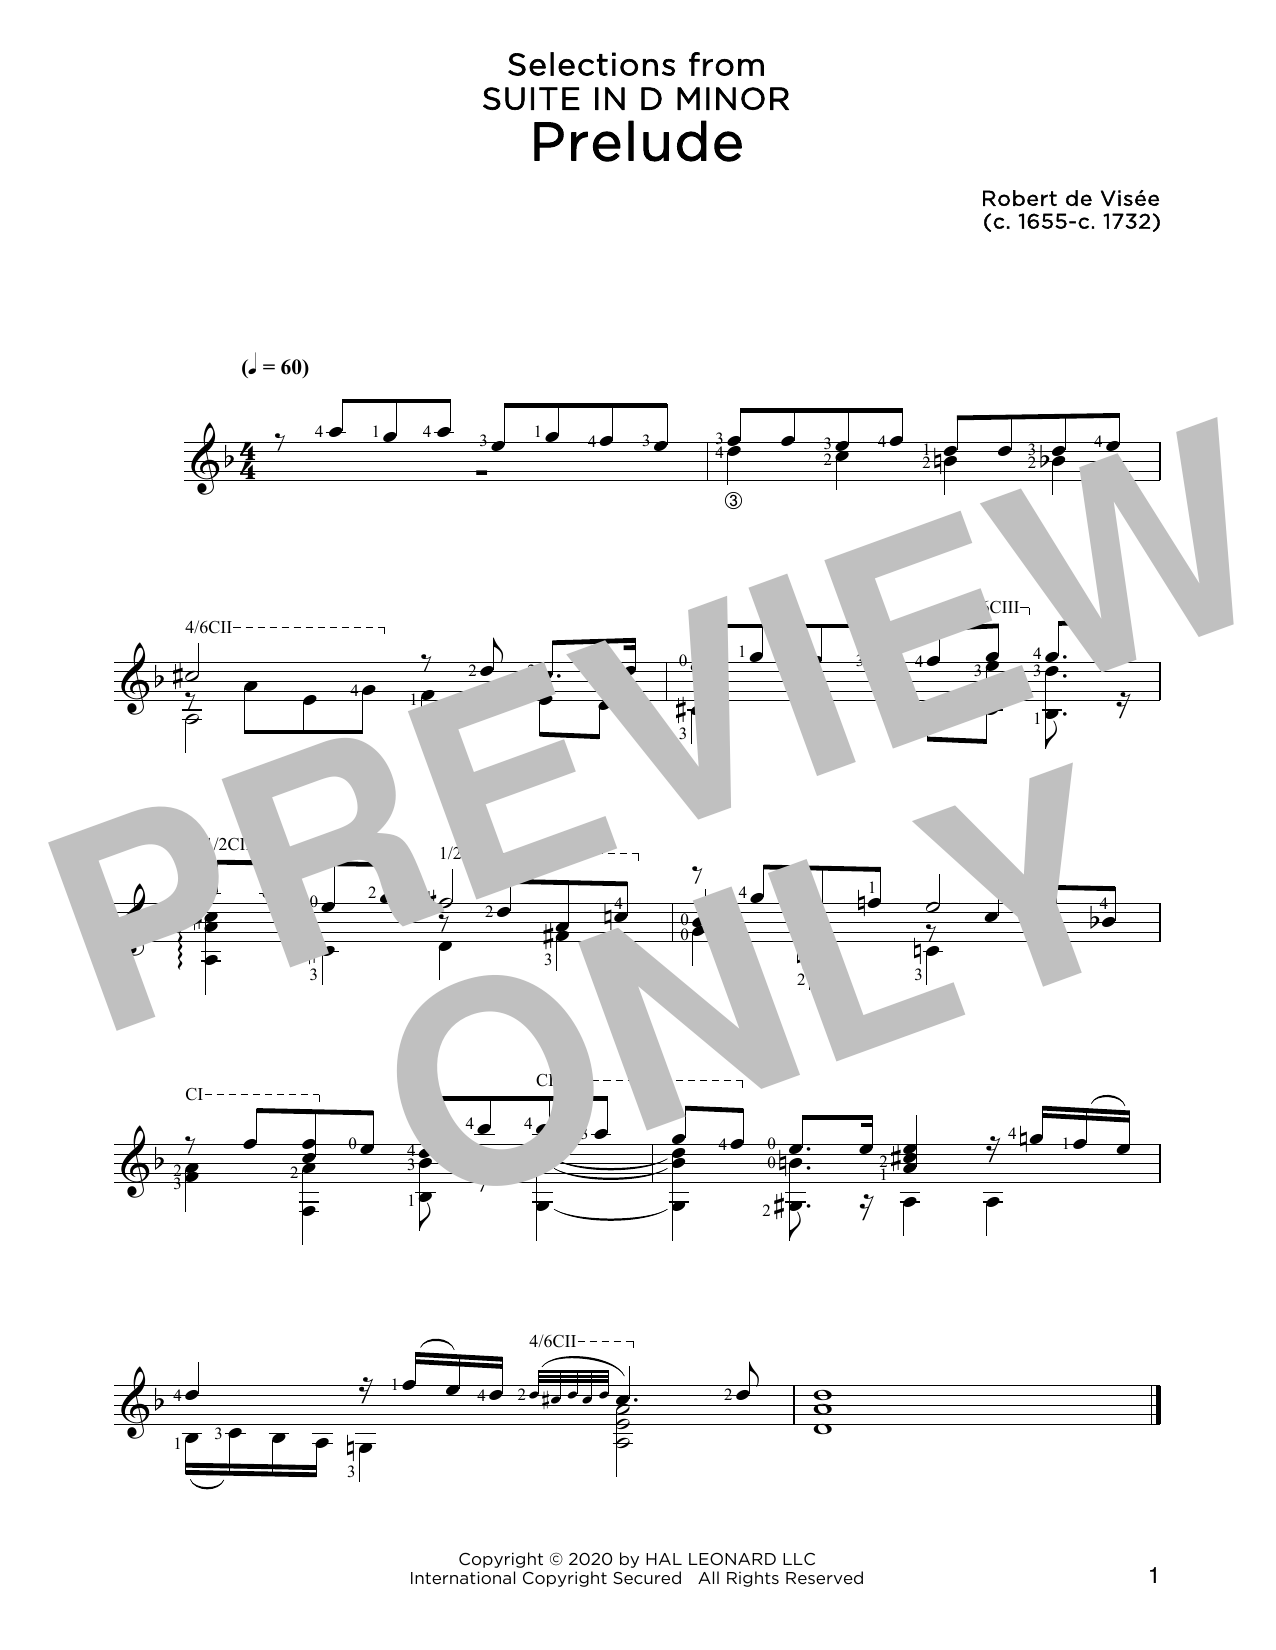 Robert de Visee Prelude sheet music notes and chords. Download Printable PDF.